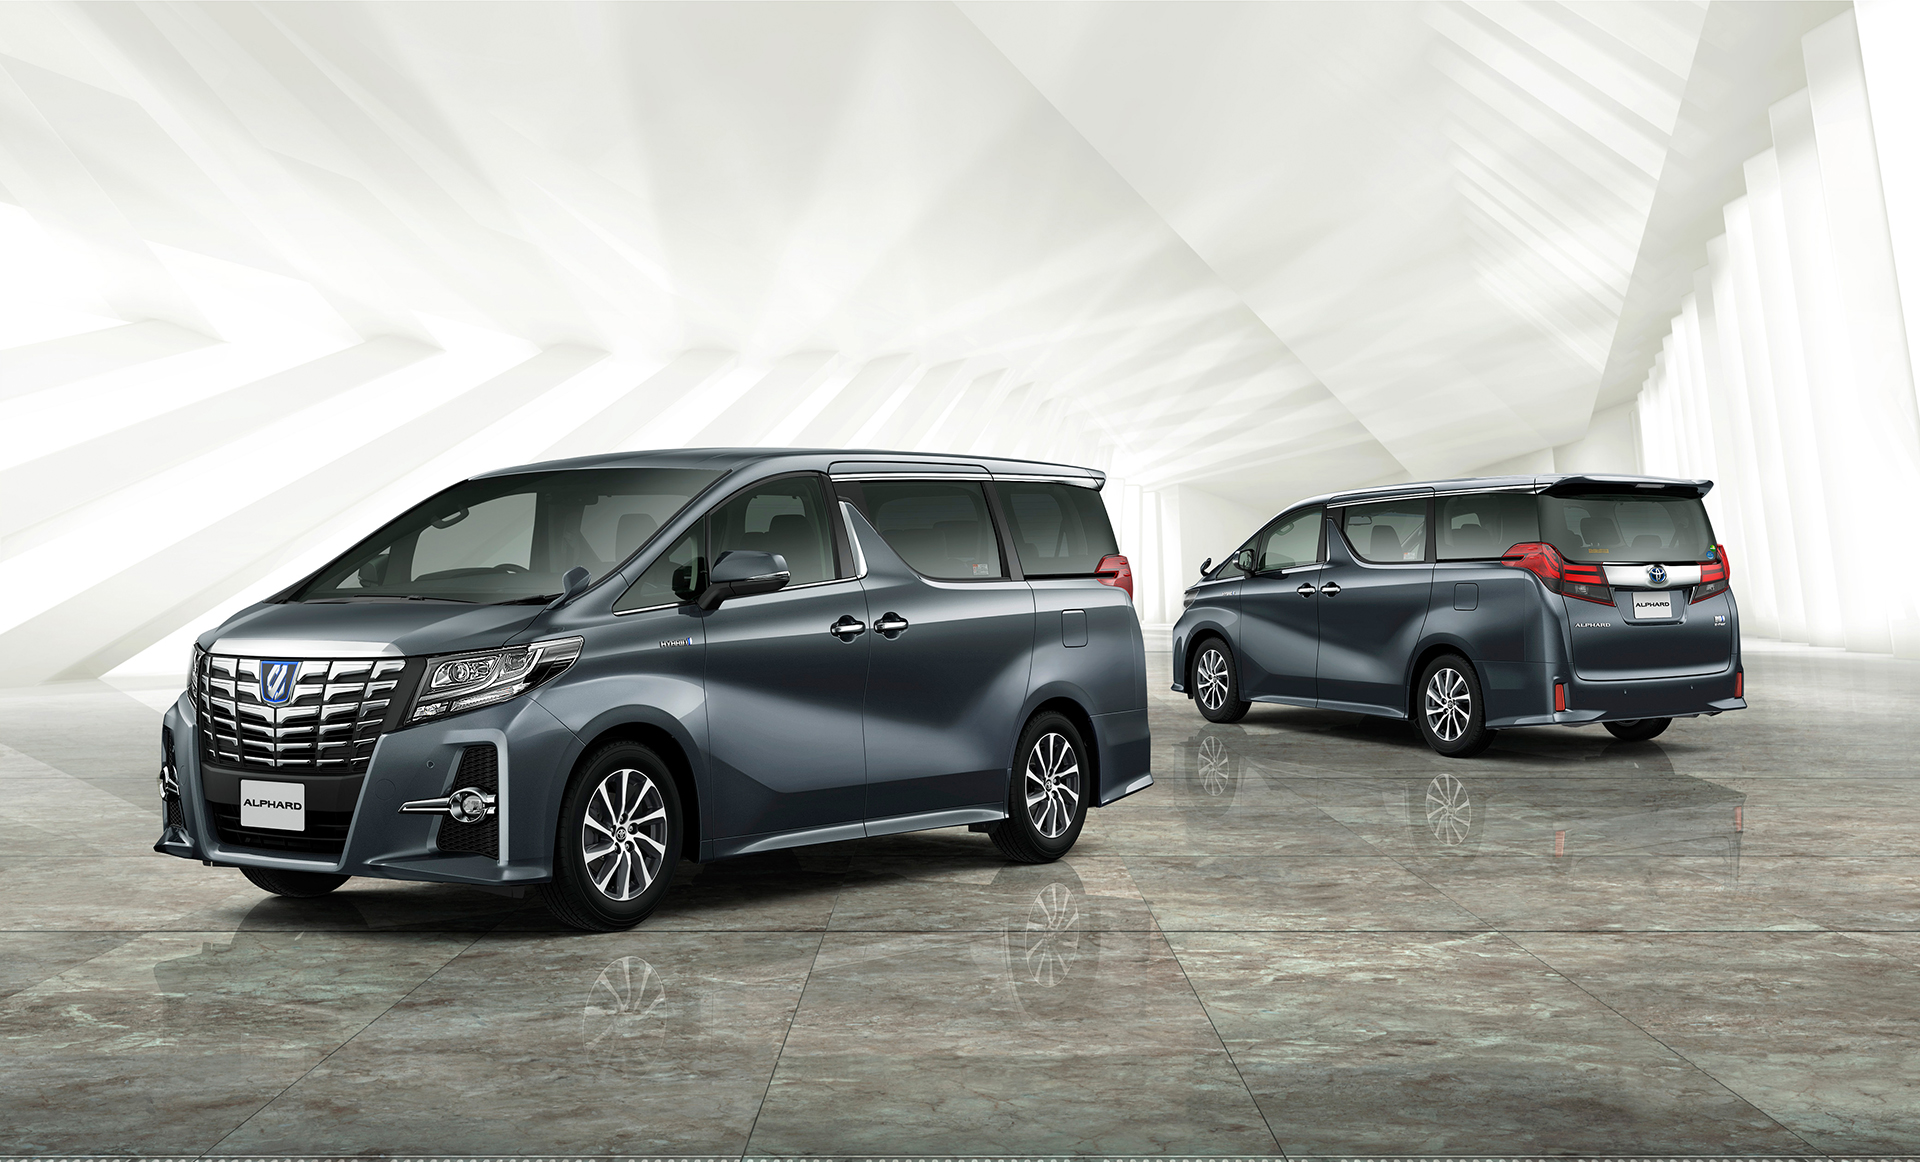 all new alphard vs vellfire grand avanza type g 1.3 umw toyota motor set to debut and 2016 6